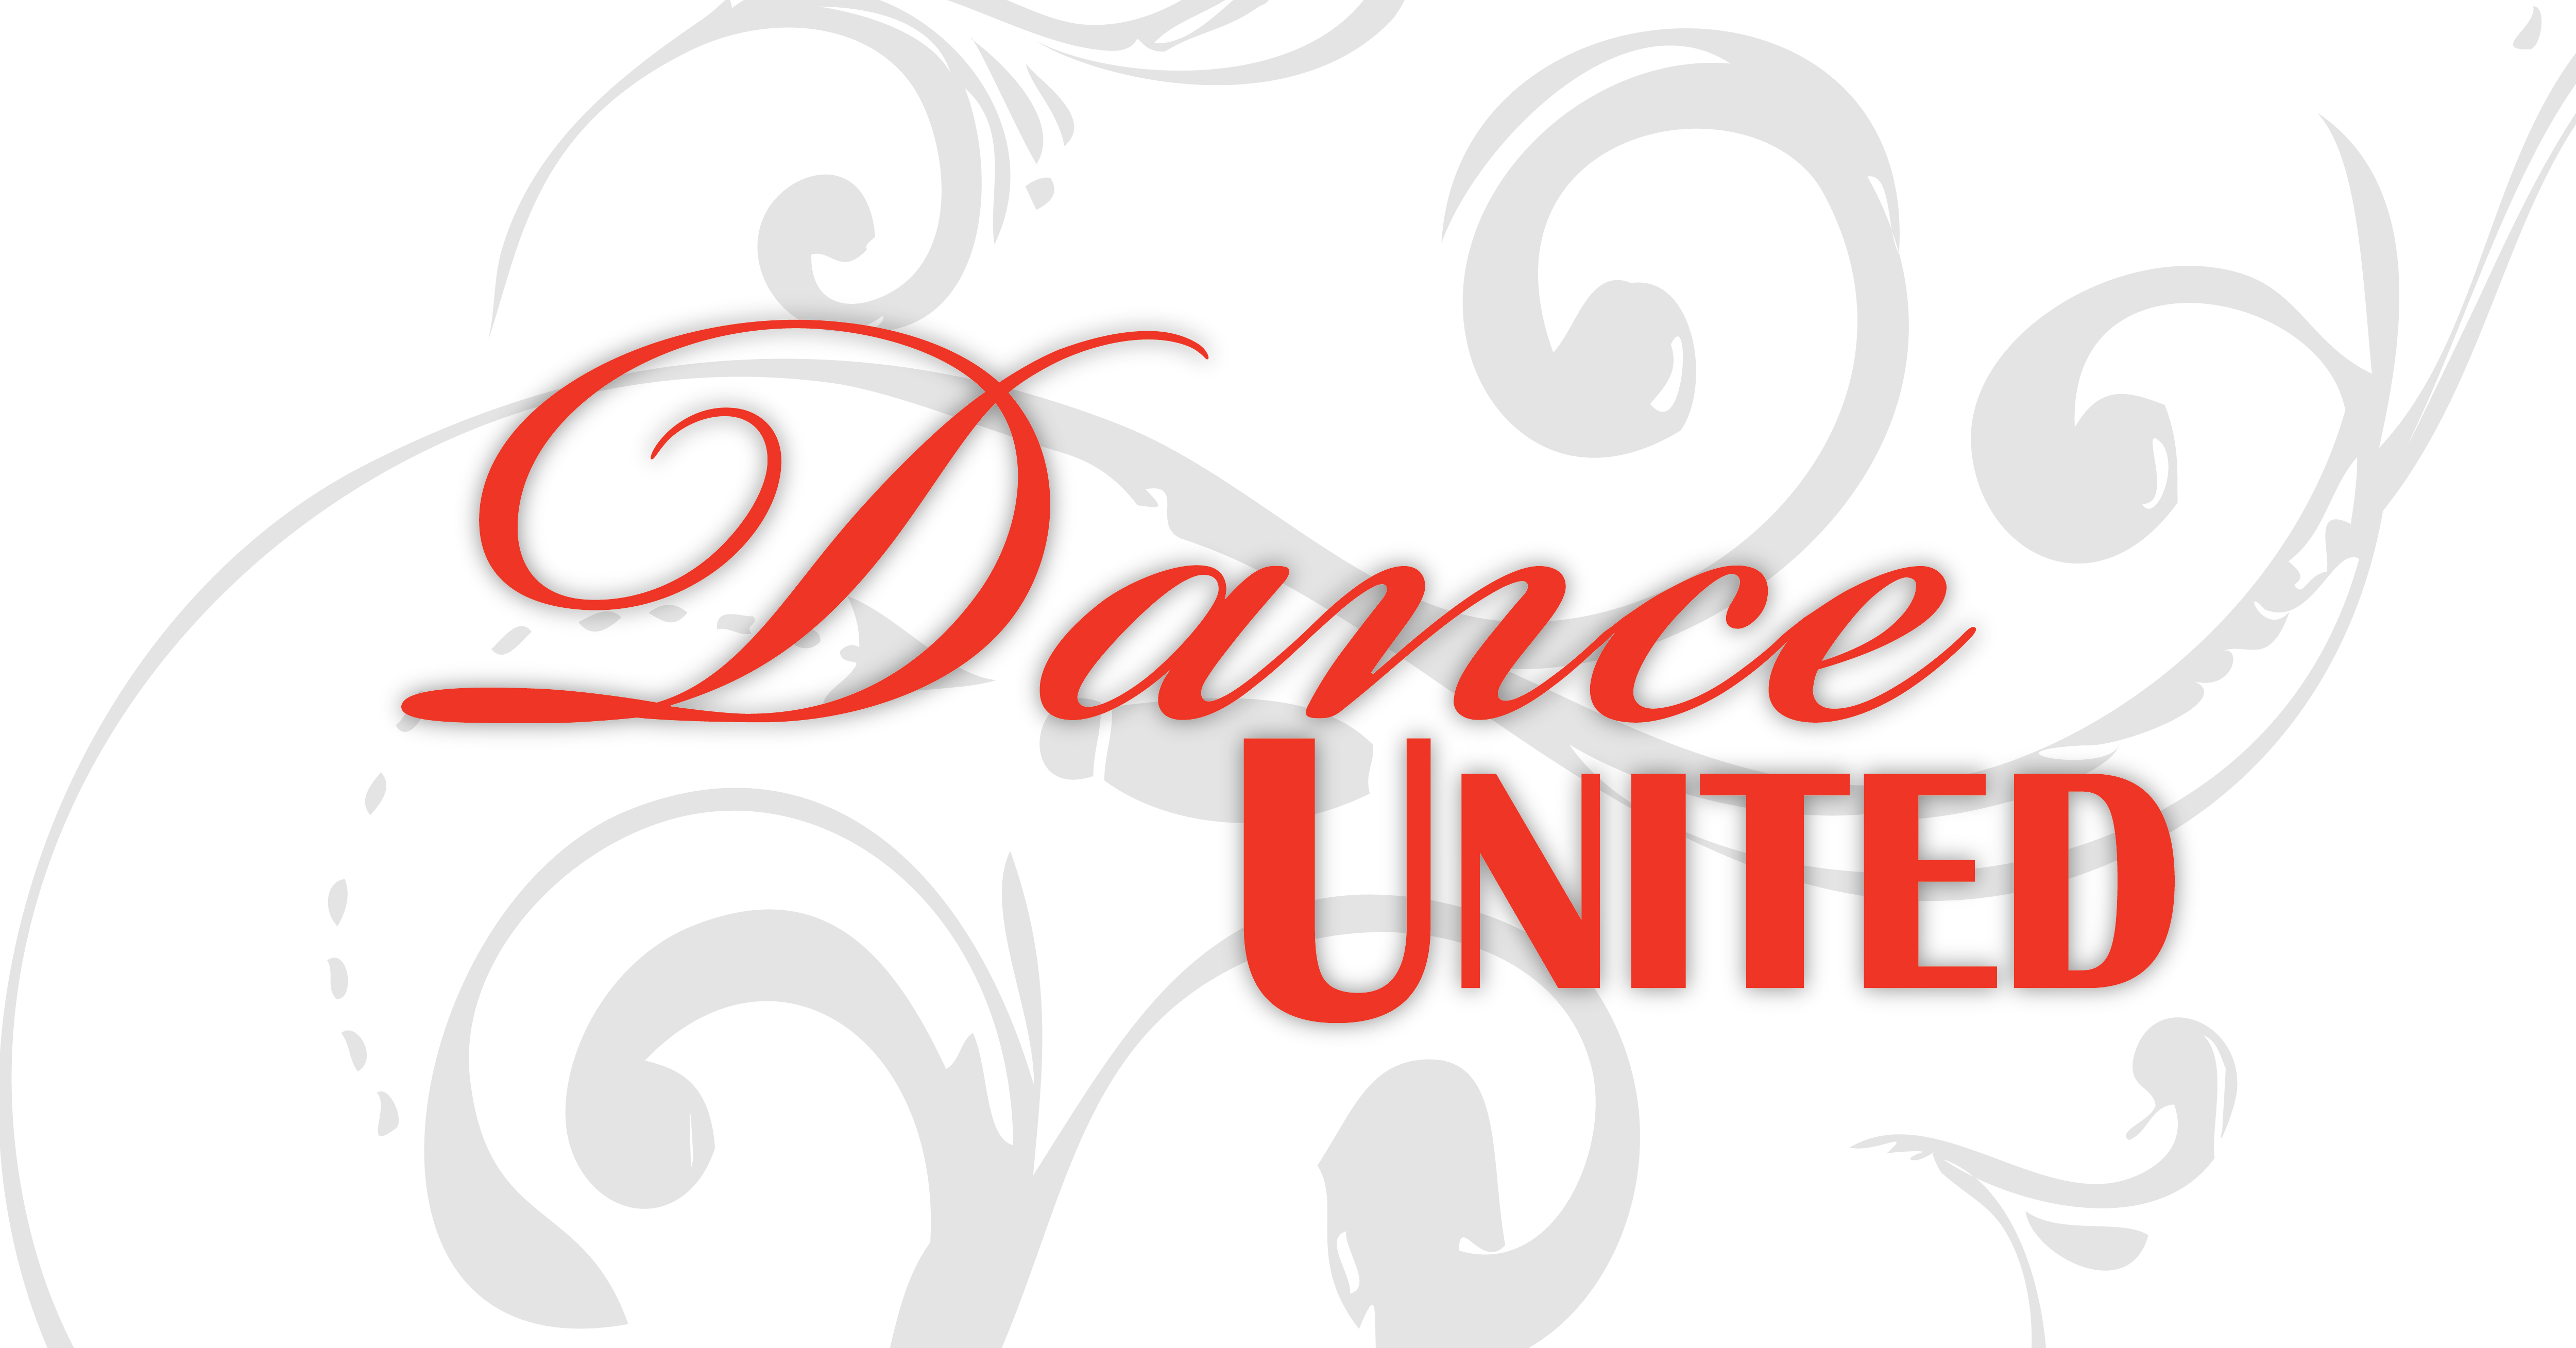 Danceunited mobilecause 02